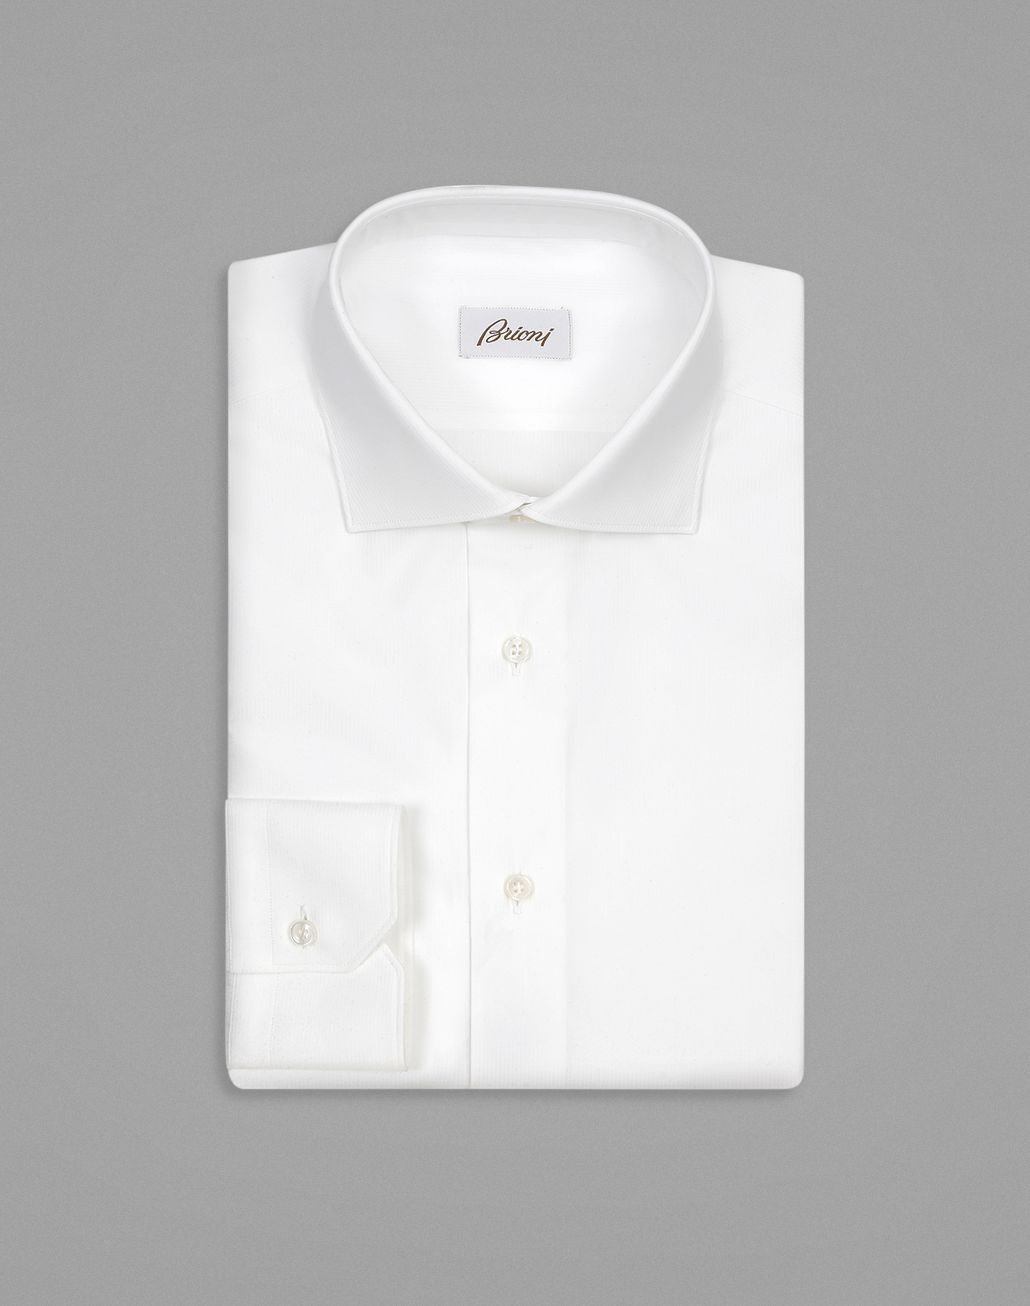 BRIONI White Tone-on-Tone Striped Formal Shirt Formal shirt Man f